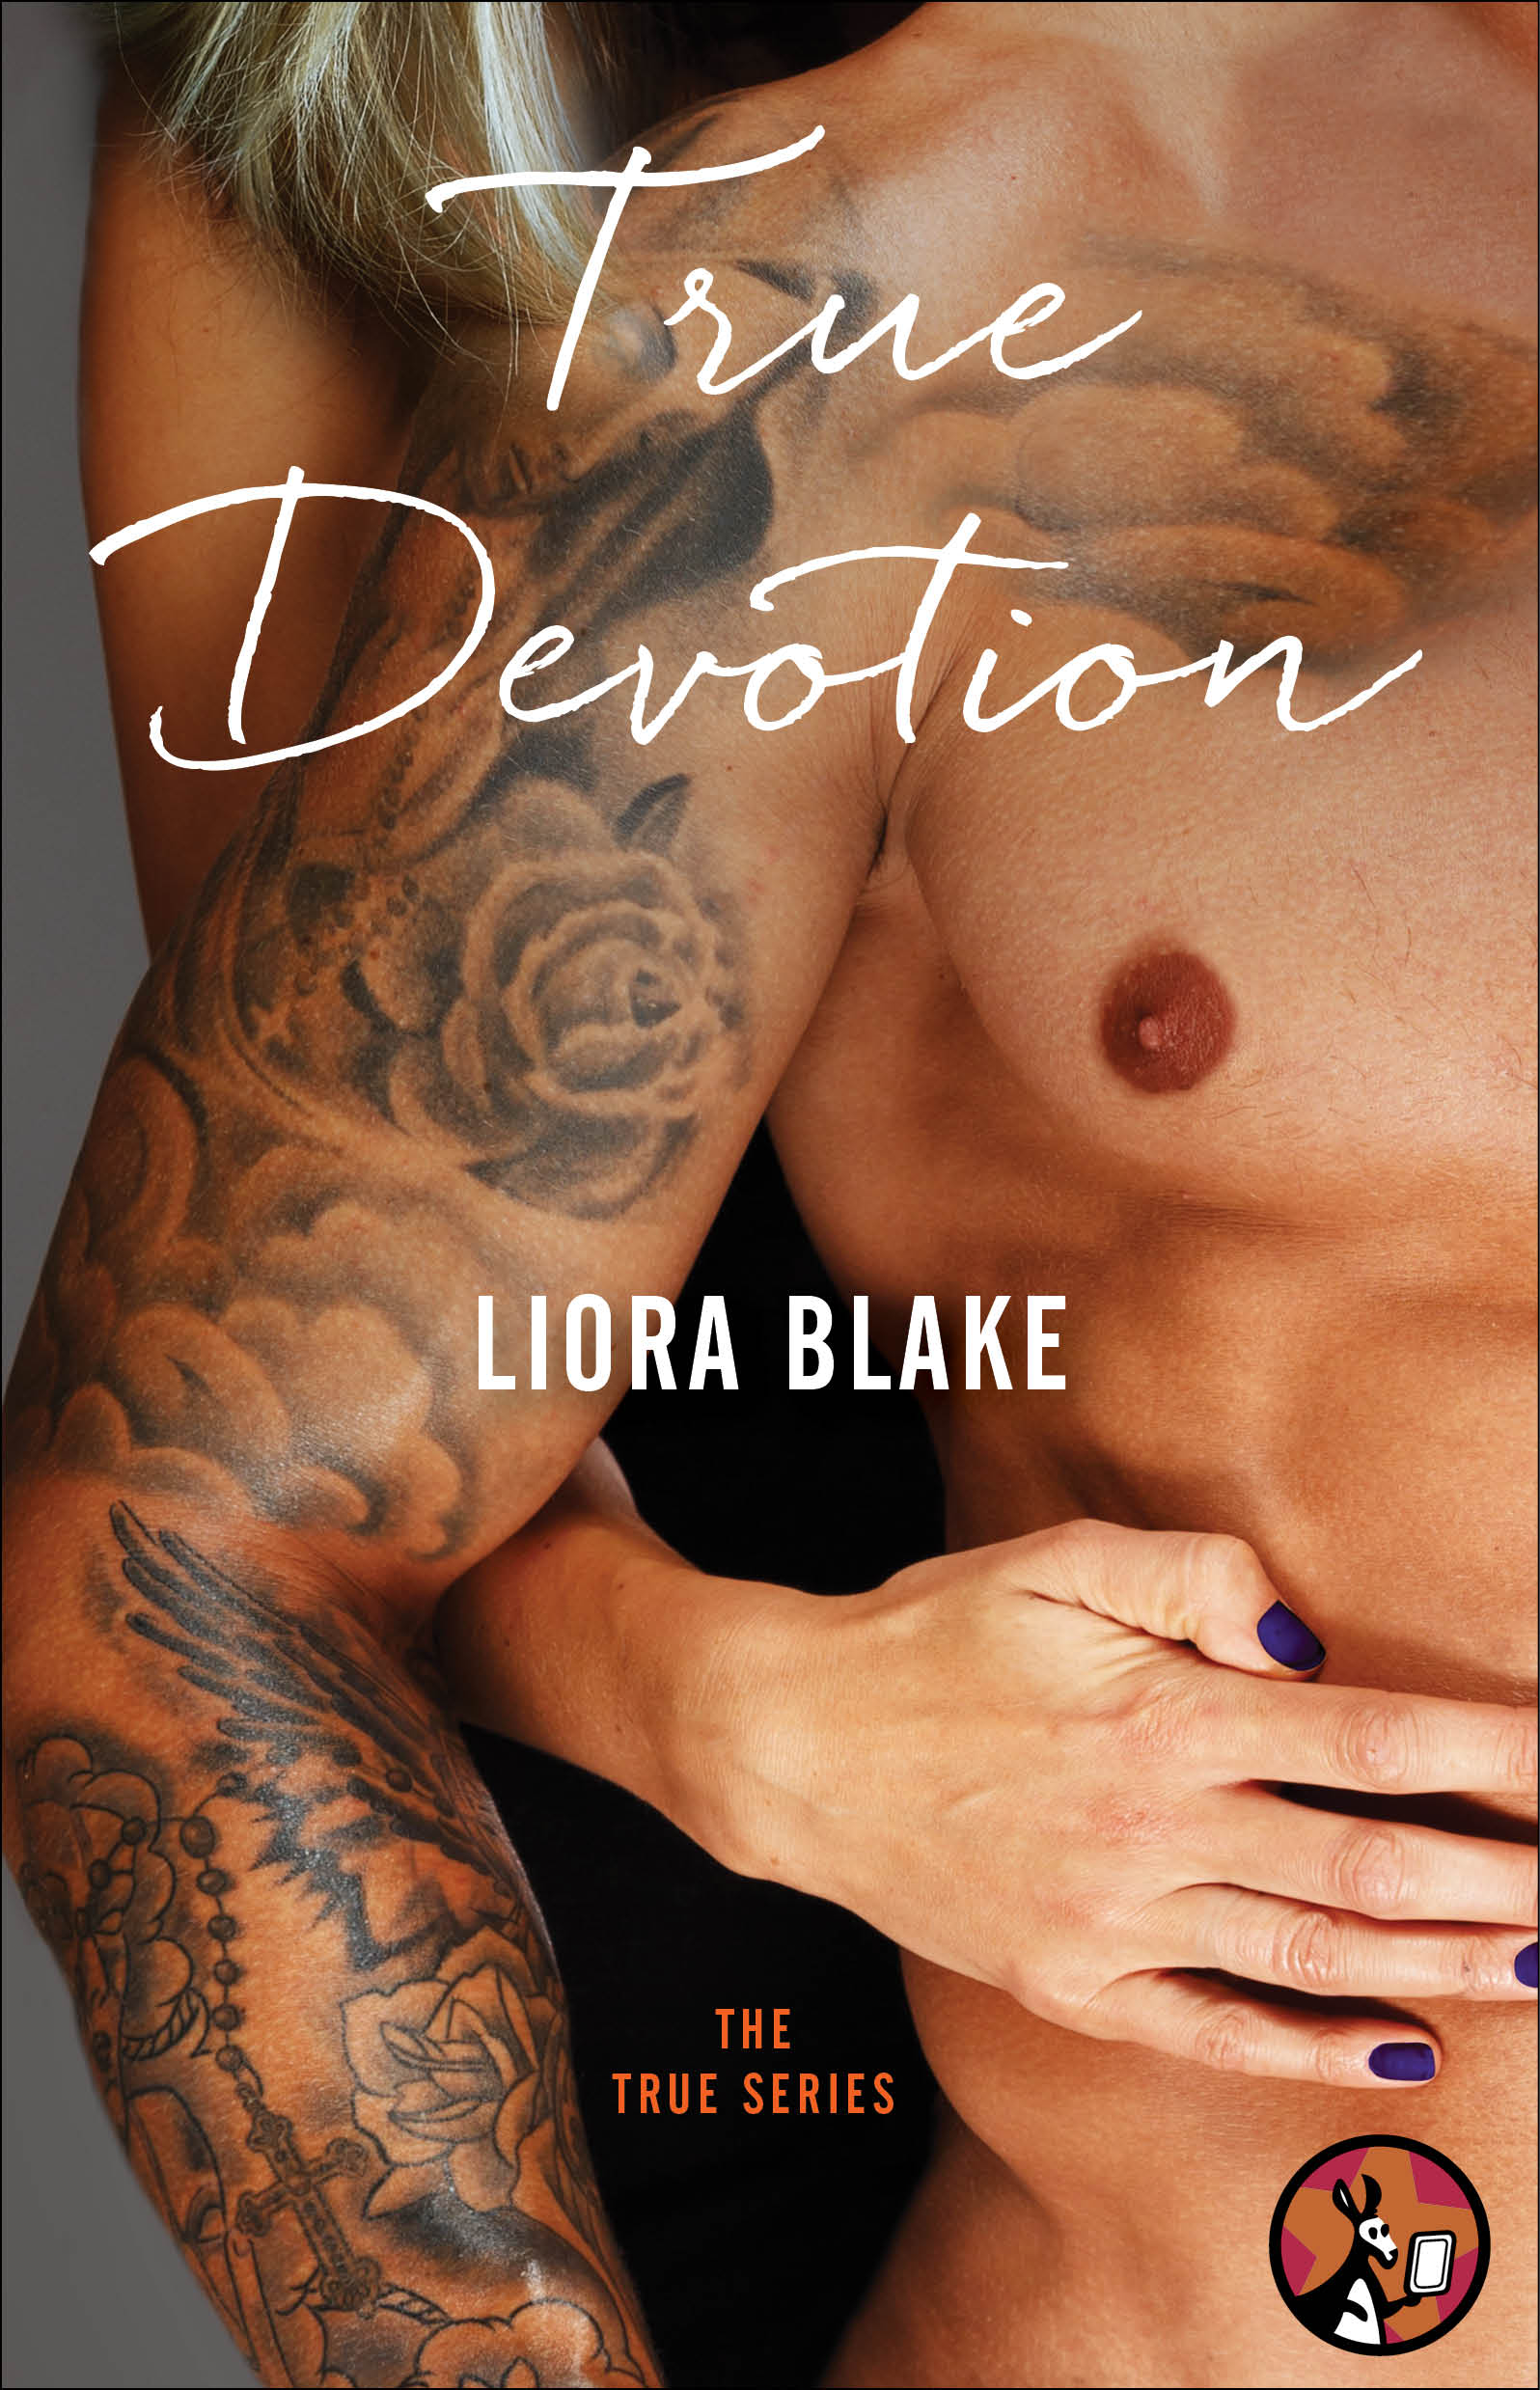 True Devotion by Liora Blake